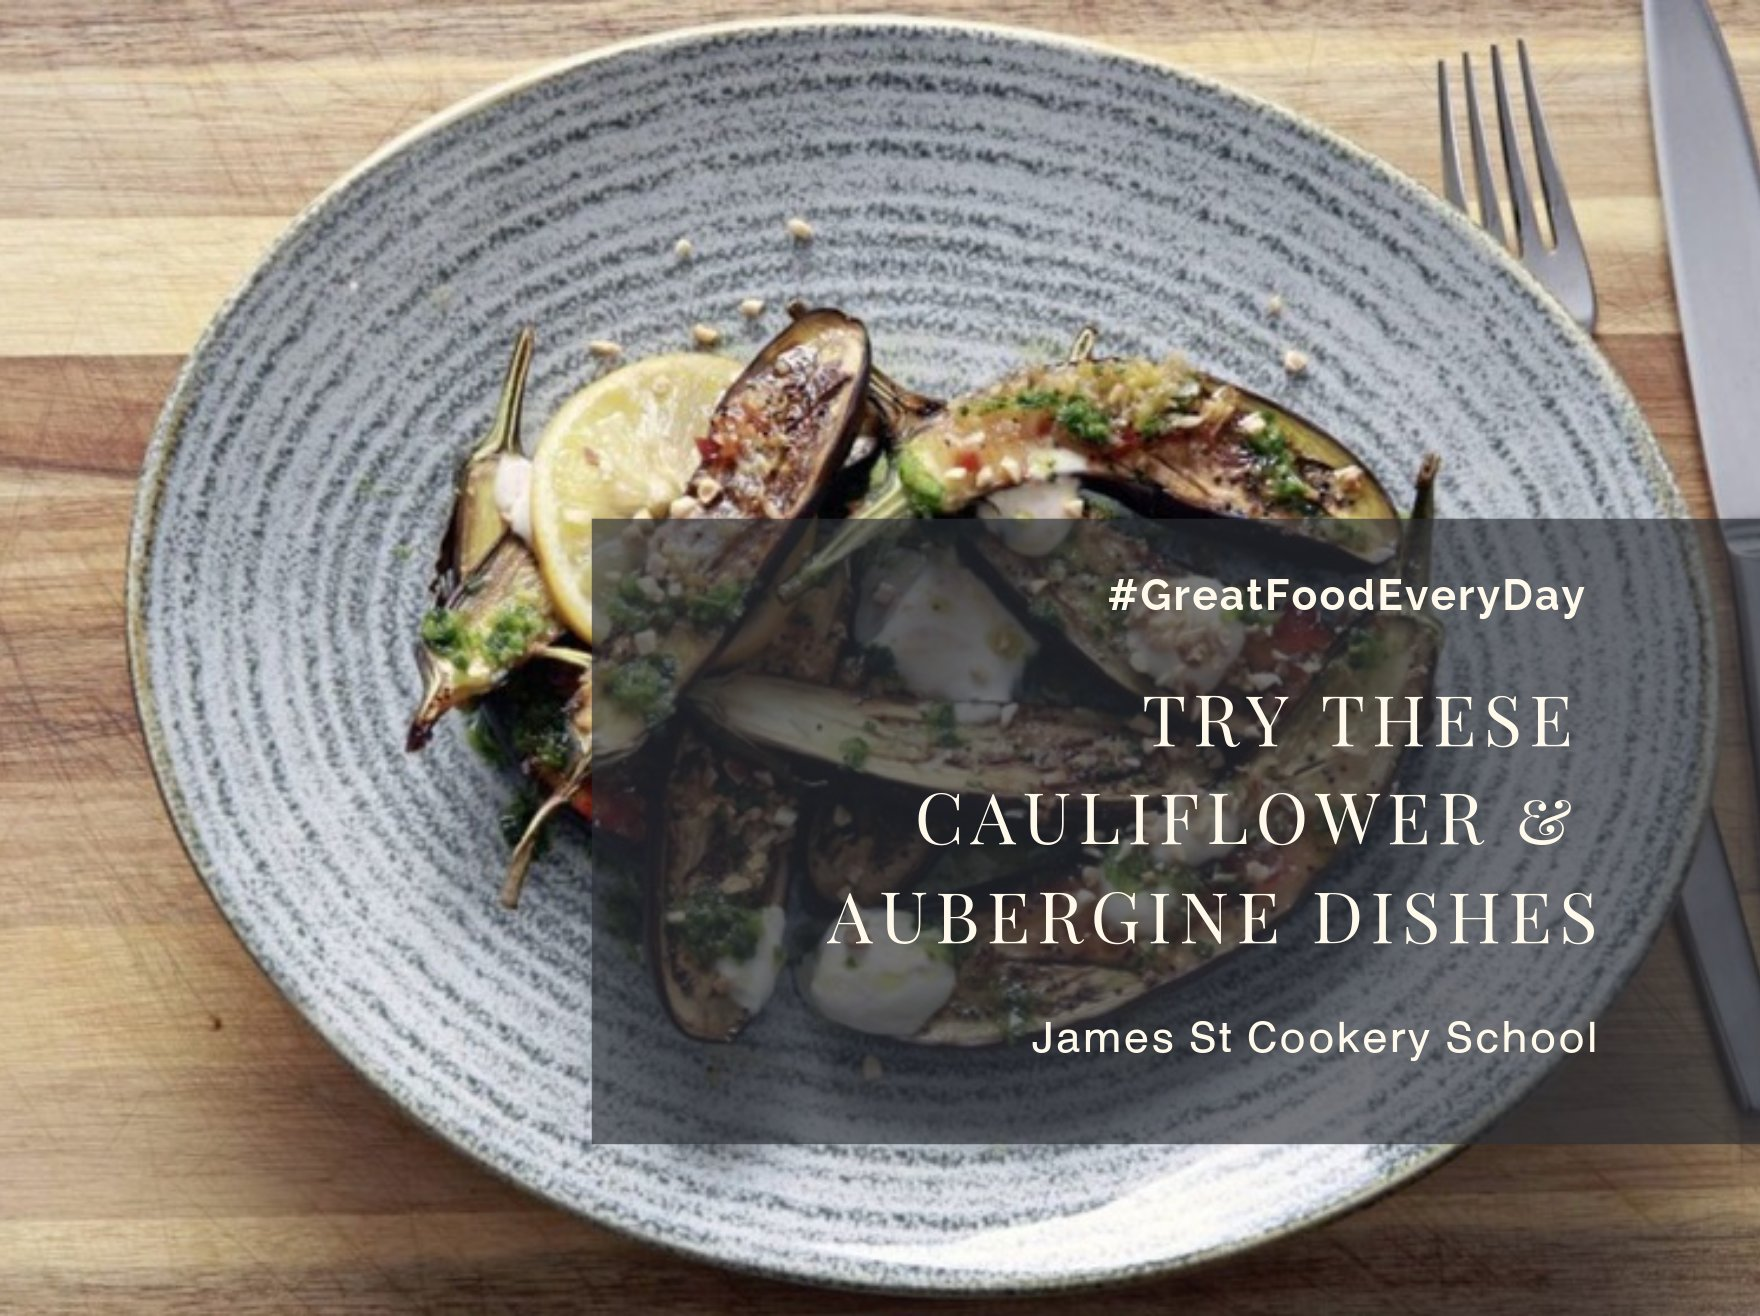 Try these Cauliflower & Aubergine dishes